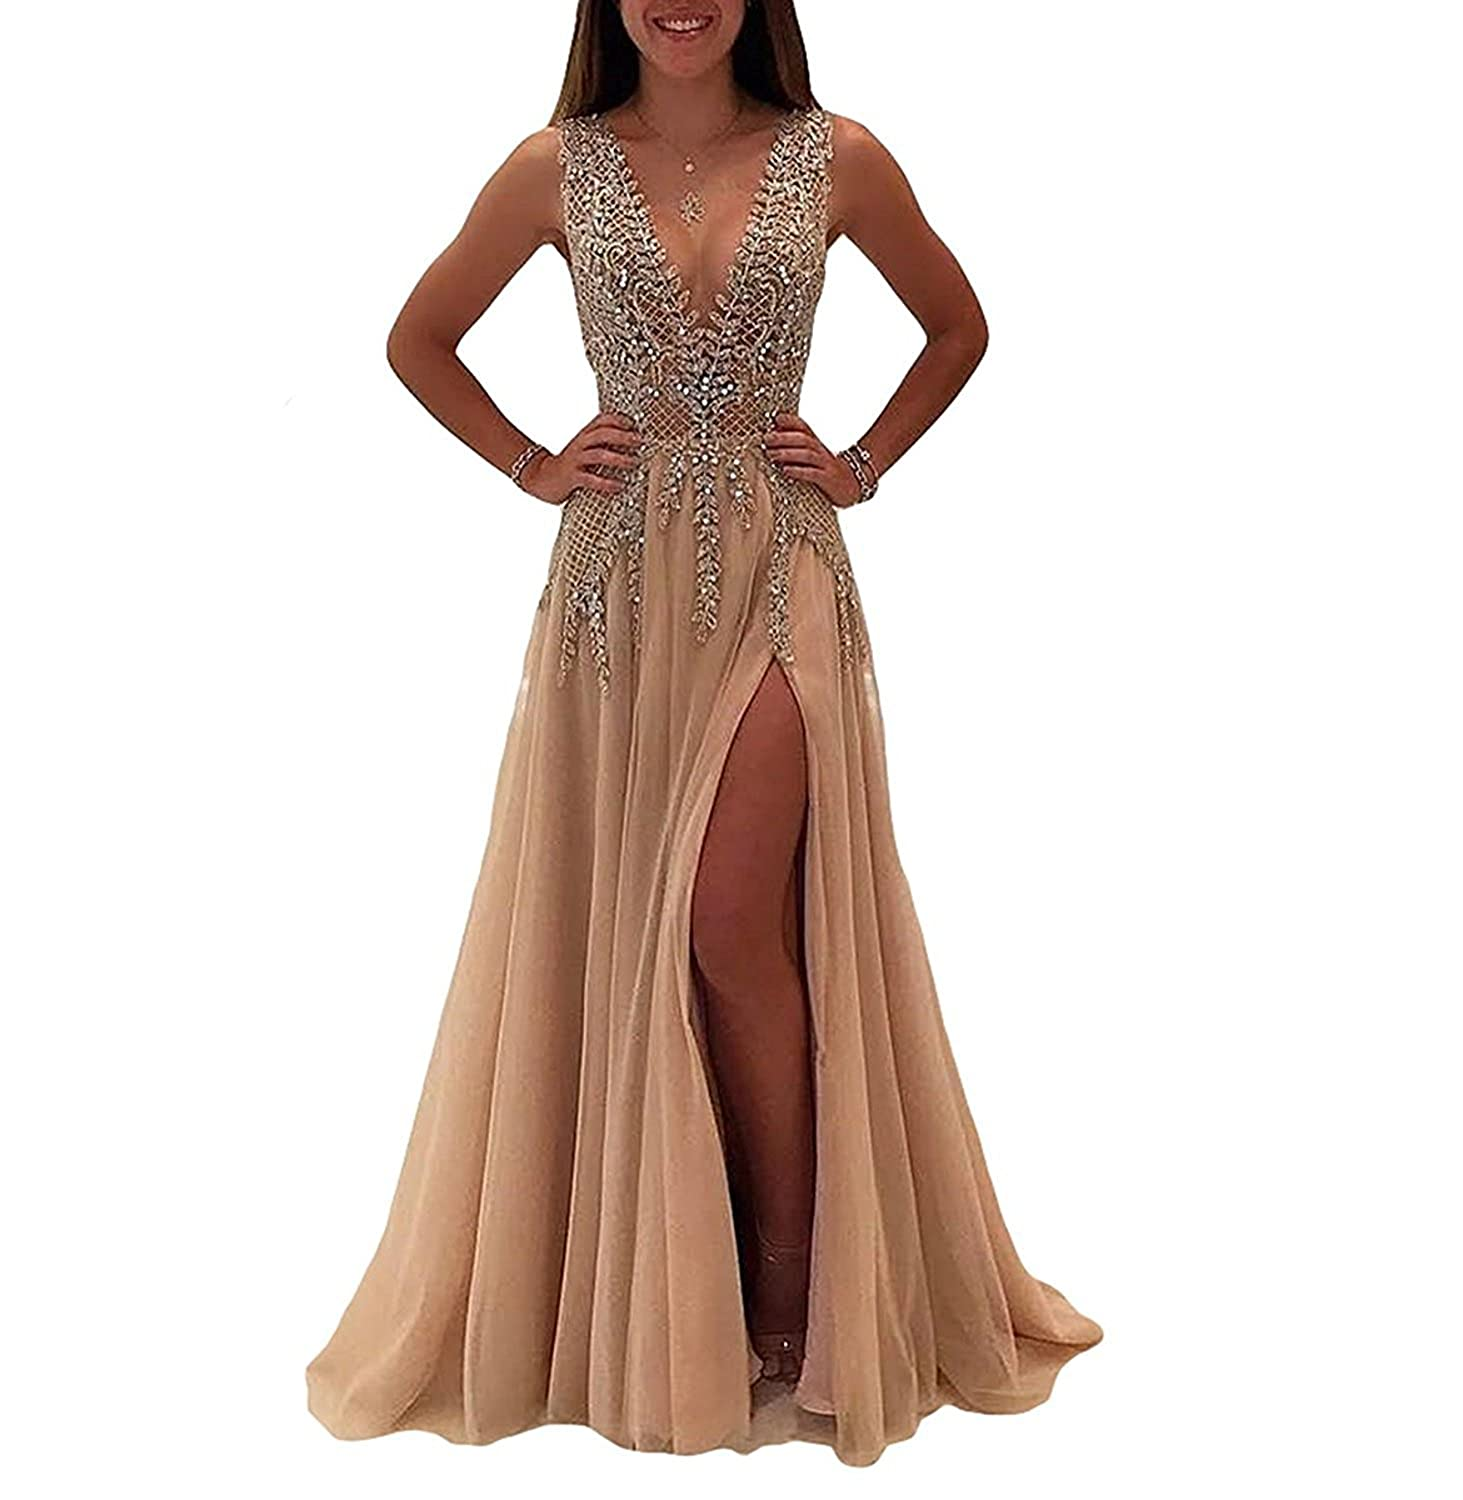 Nina Ding 2018 Prom Dresses for Women Formal Slit Luxury Evening Dresses Long Champagne NND001 - Beige - 12: Amazon.co.uk: Clothing